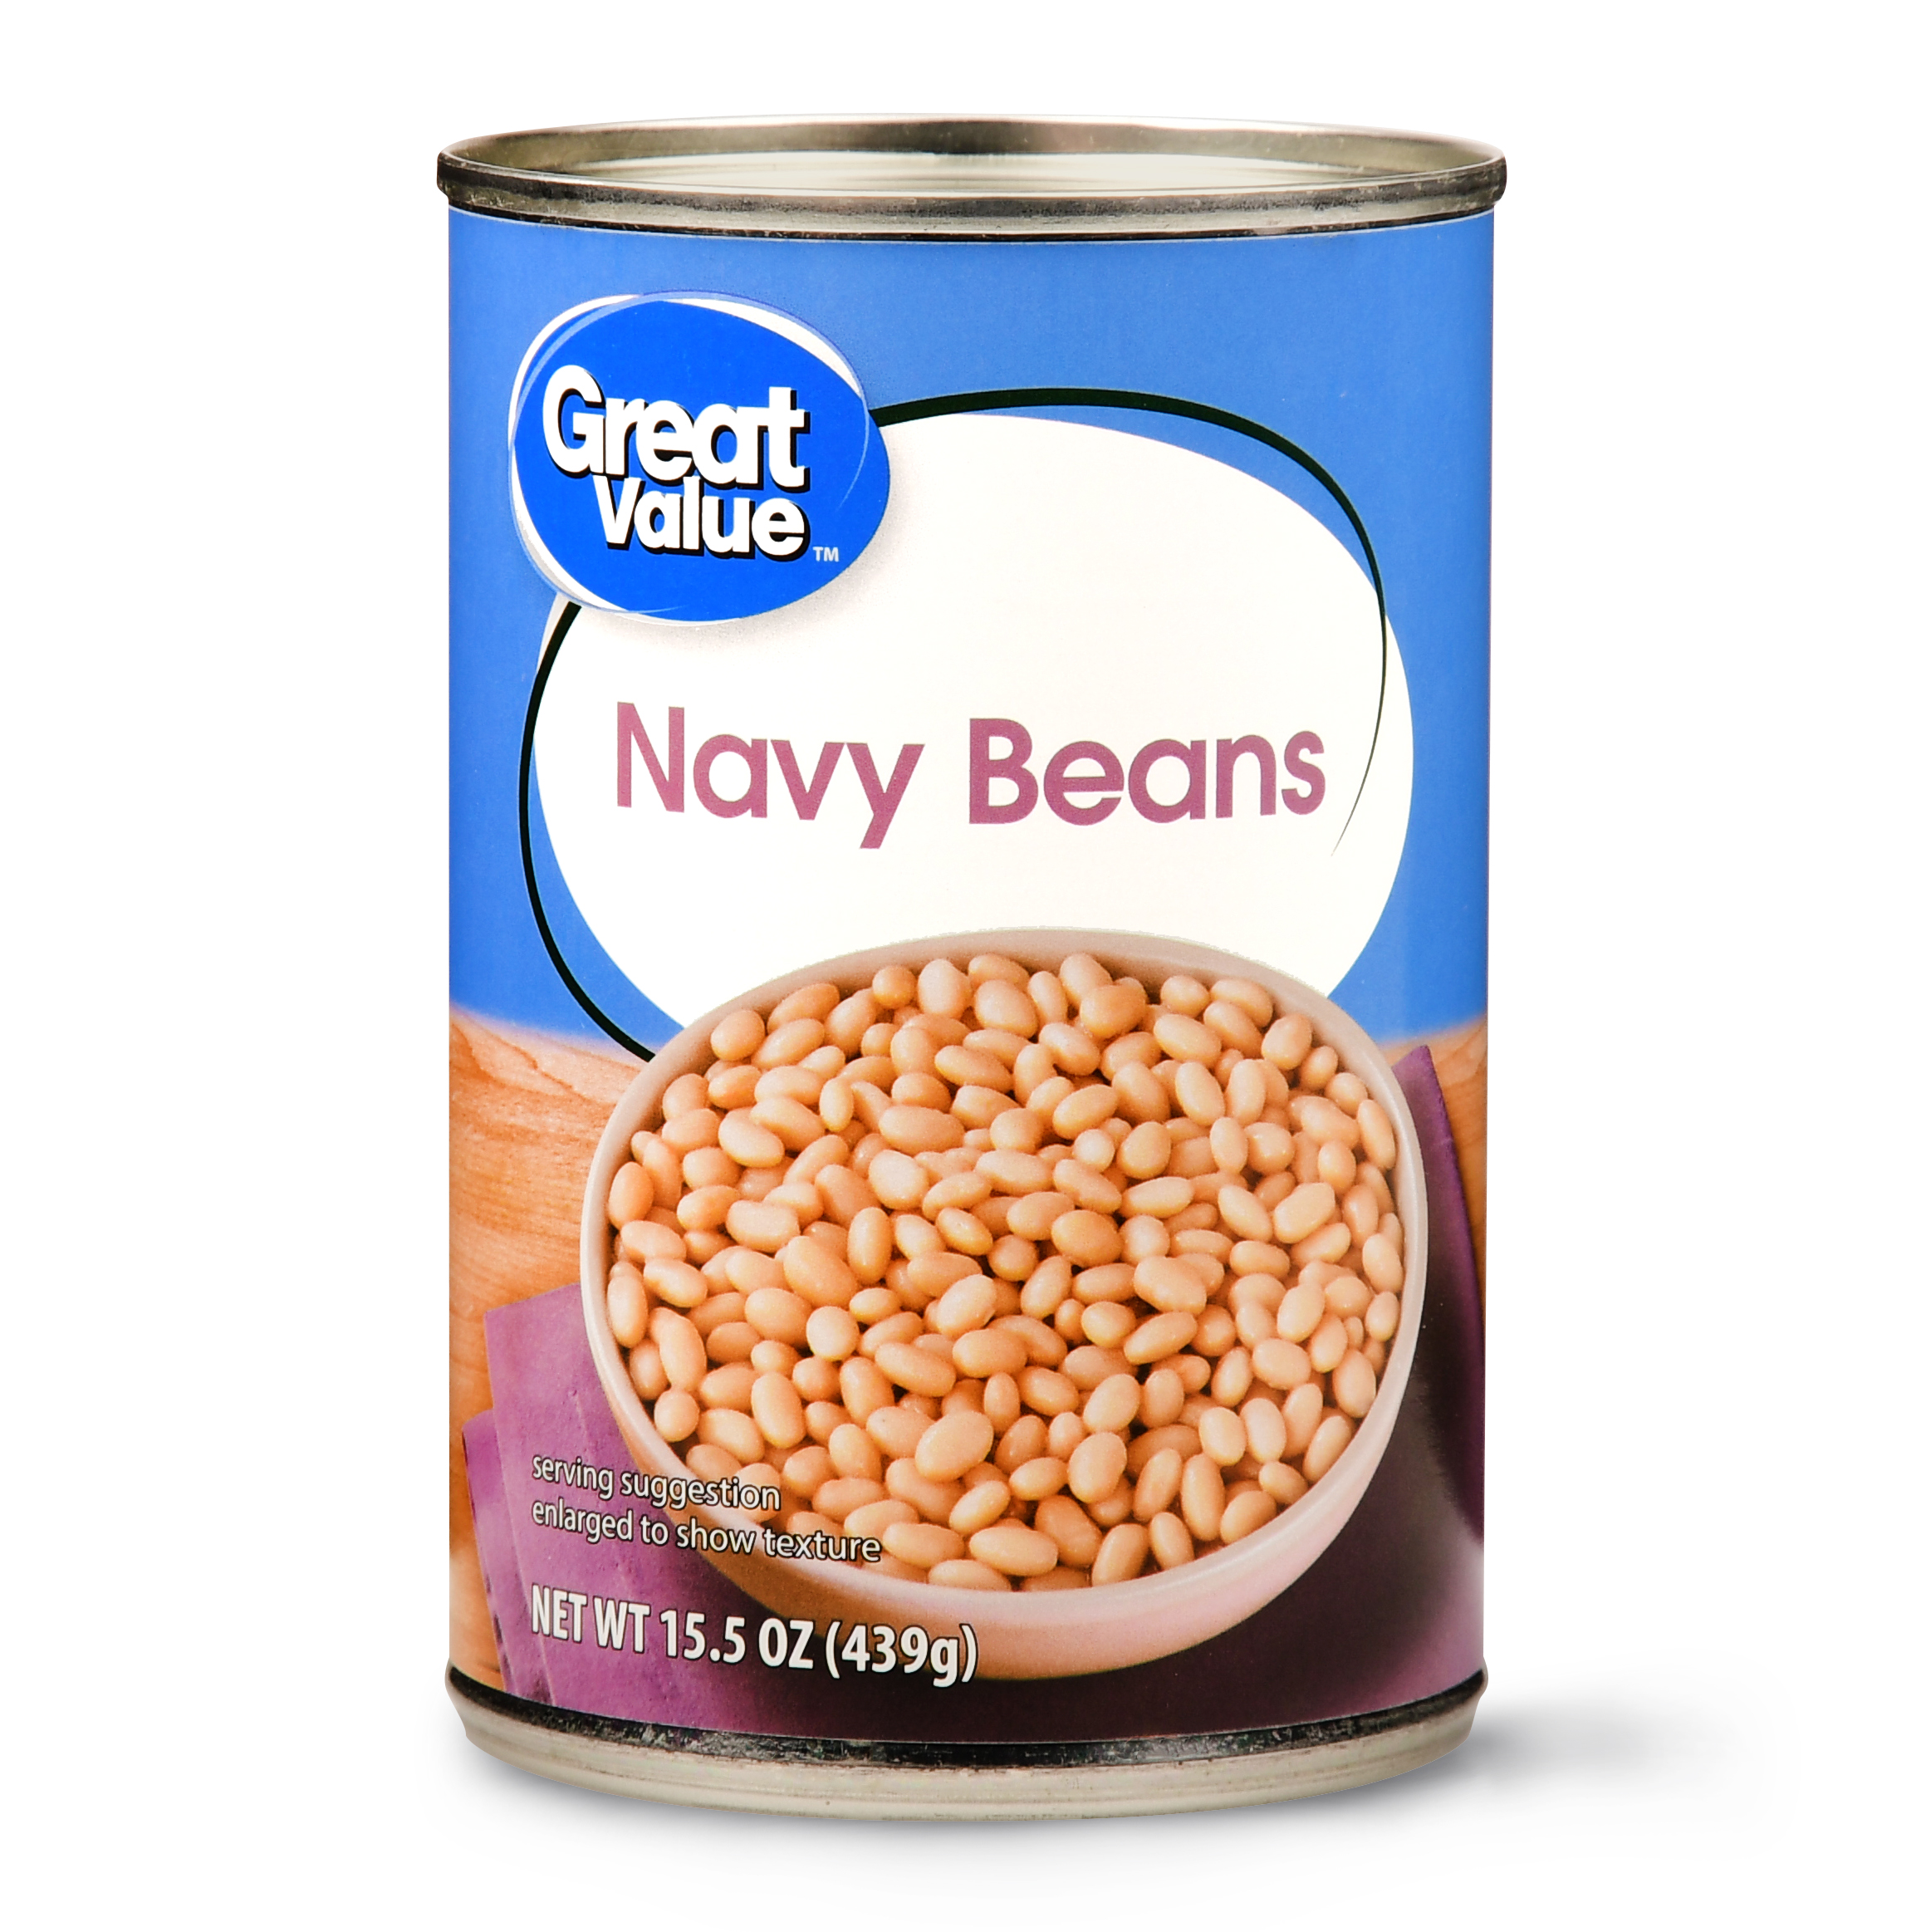 Great Value Navy Beans, 15.5 oz